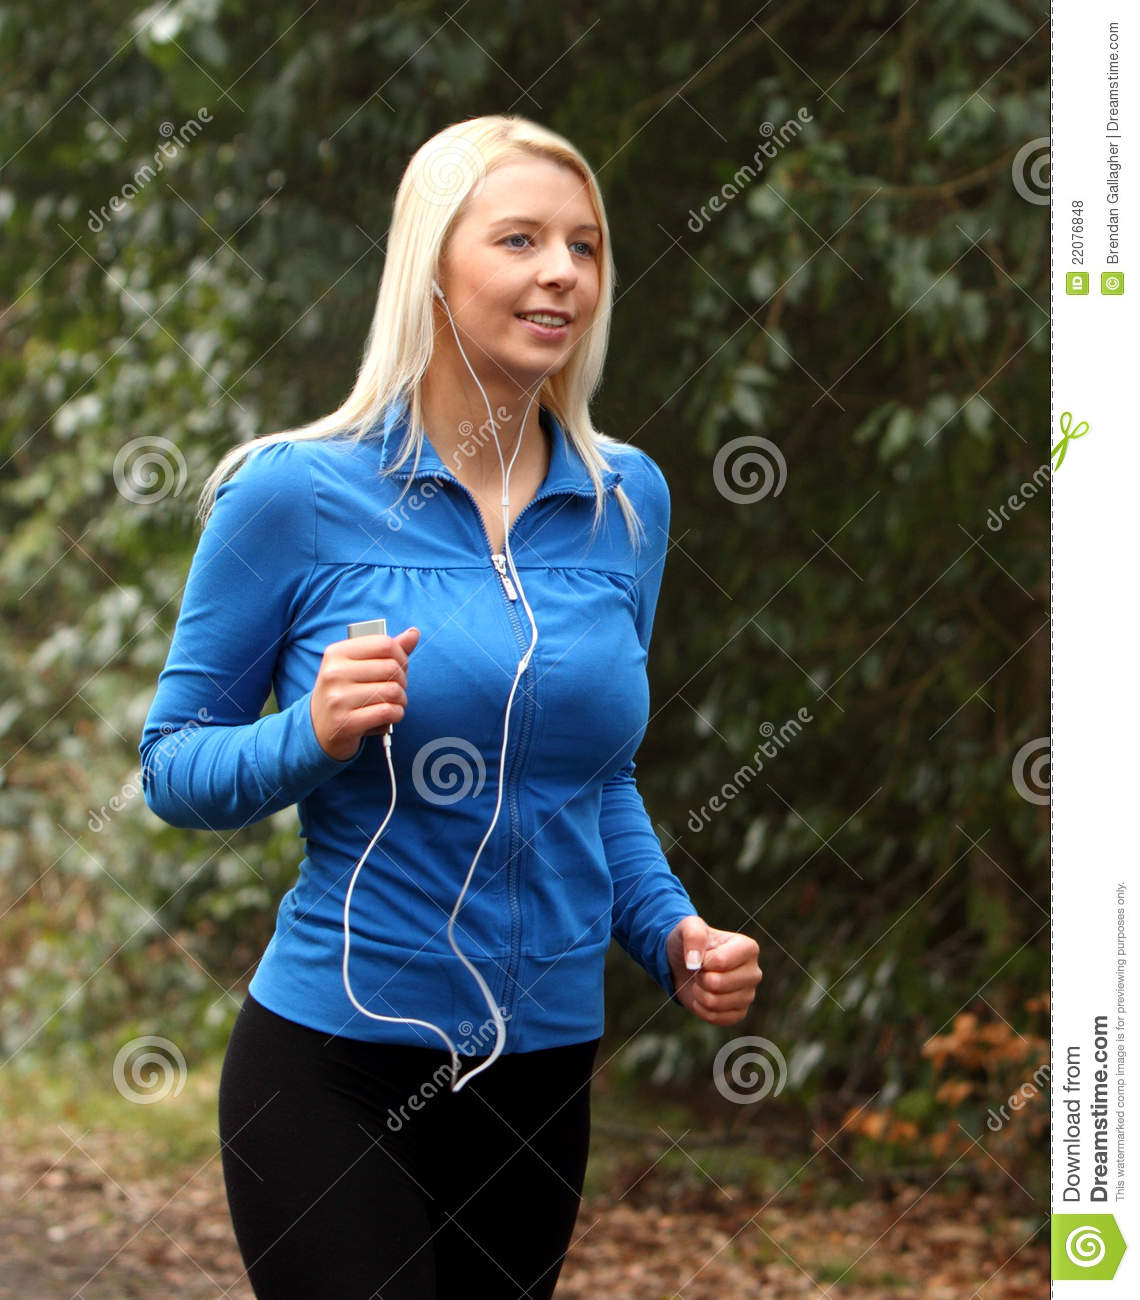 Girls jogging pornstar picture 84